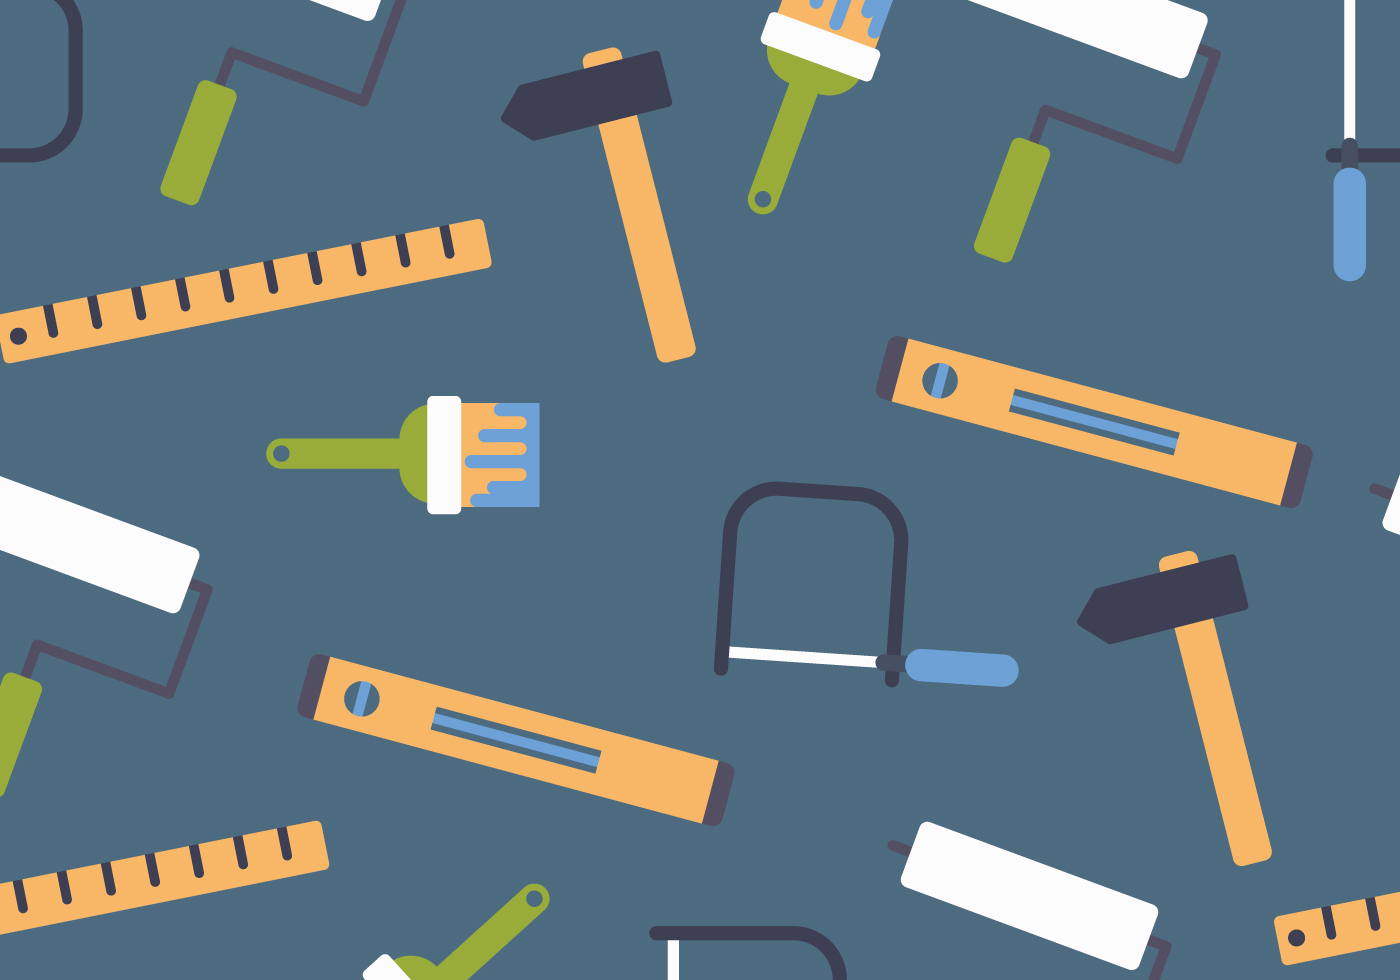 Tools Pattern - Download Free Vector Art, Stock Graphics ...